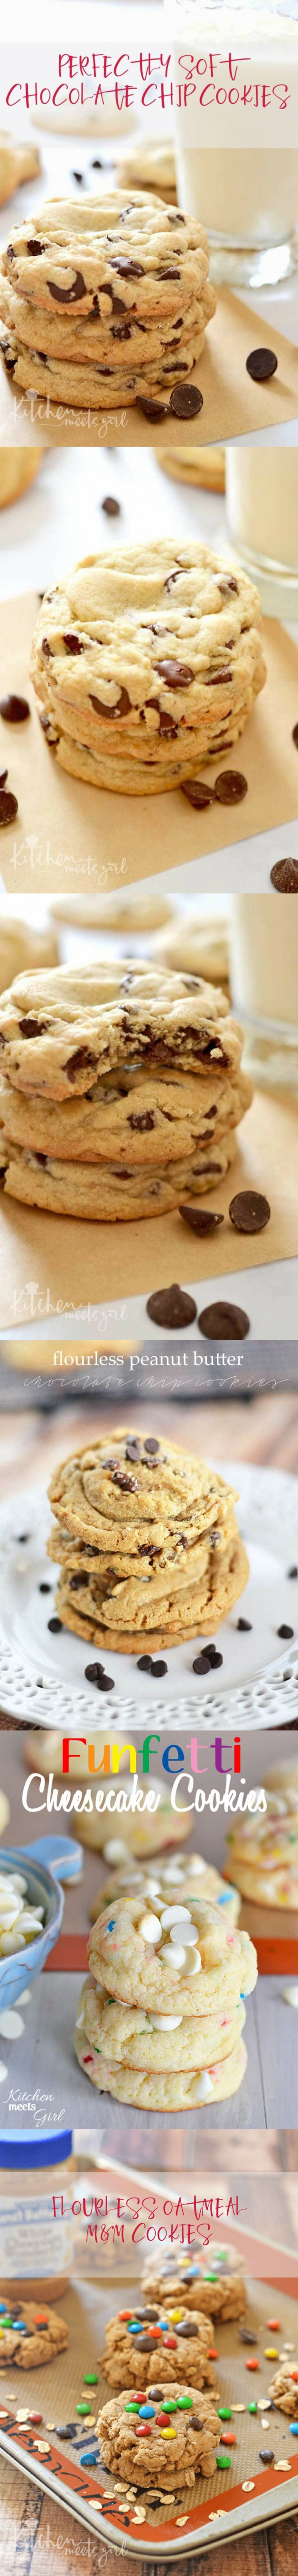 Perfectly Soft Chocolate Chip Cookies   Kitchen Meets Girl